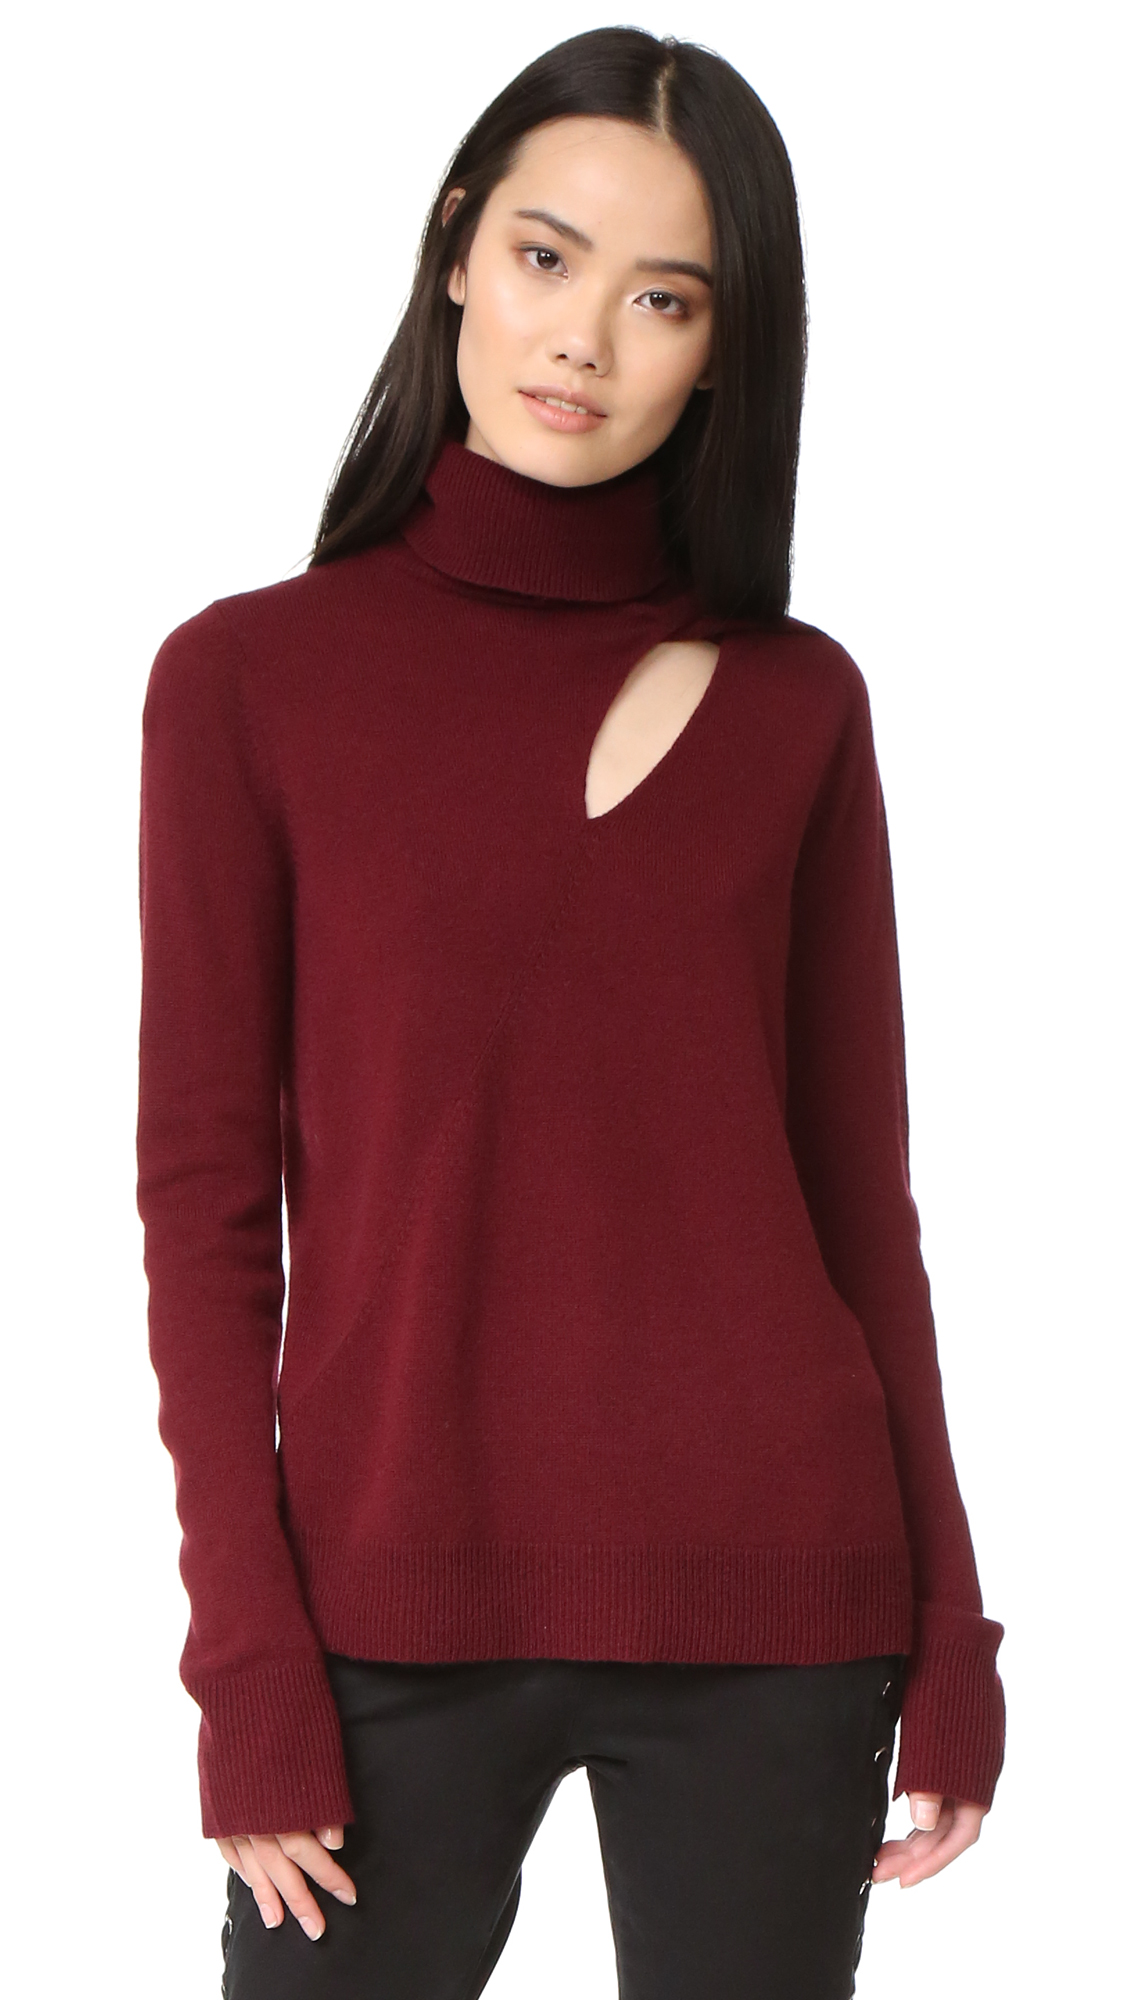 A.L.C. Billy Sweater - Bordeaux at Shopbop